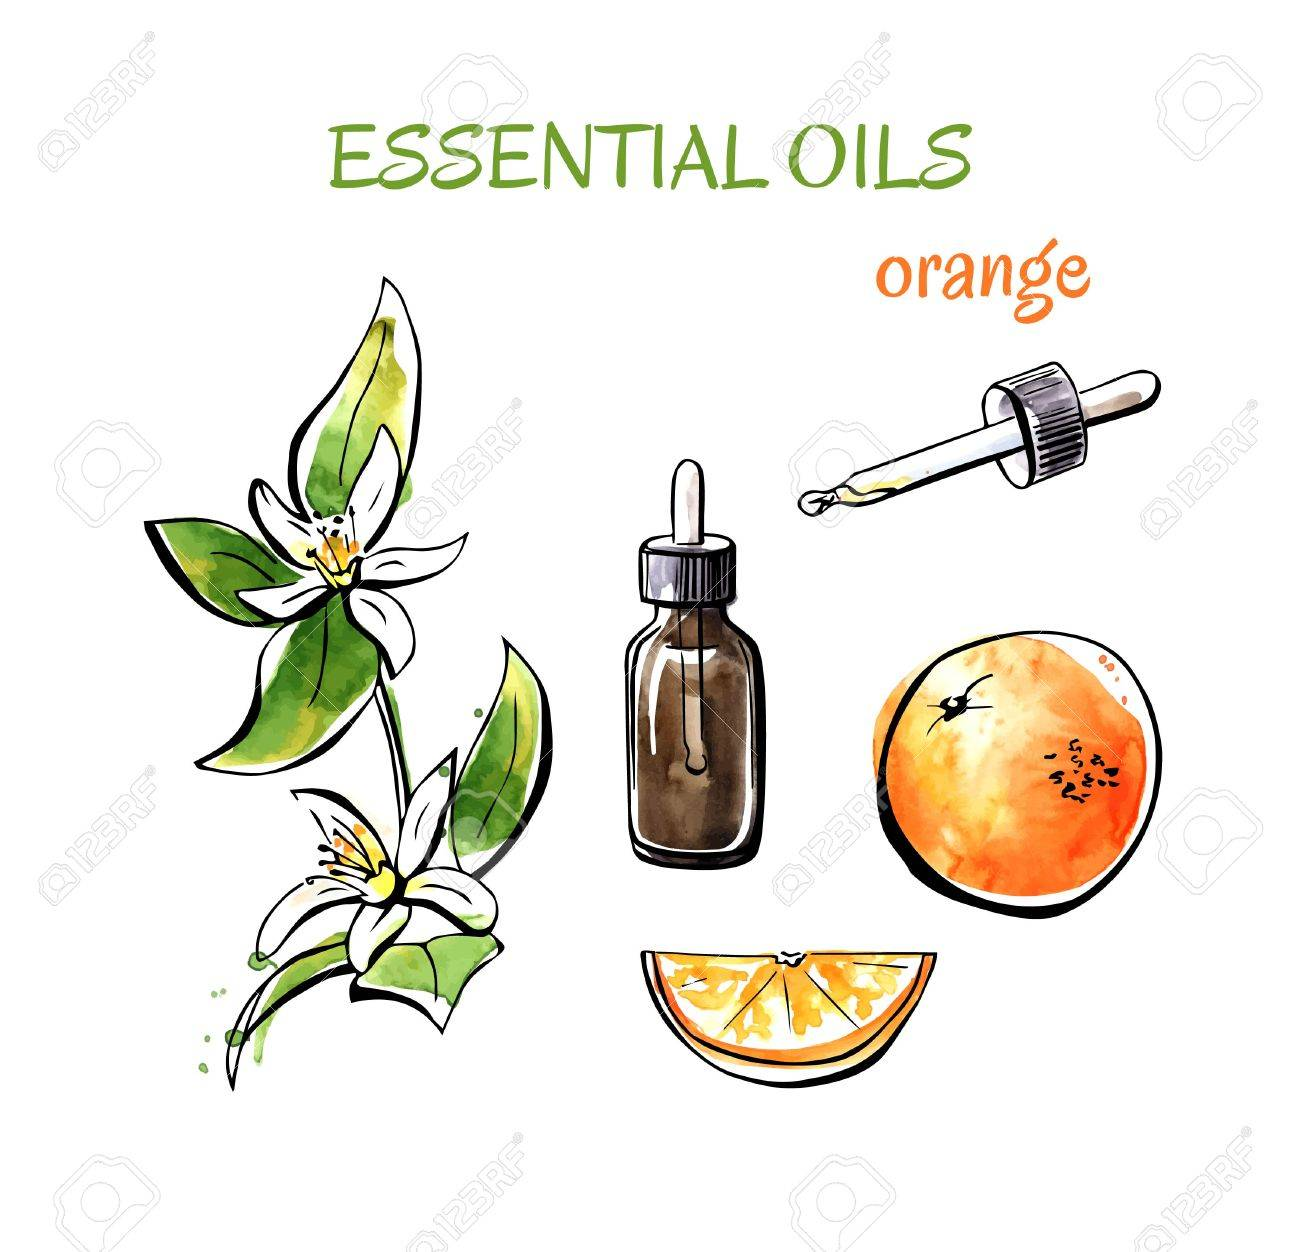 Vector illustration of orange essential oils. Branch with flowers, fruits, flasks and bottles. Set of hand drawn watercolor objects isolated on white background. - 61262323